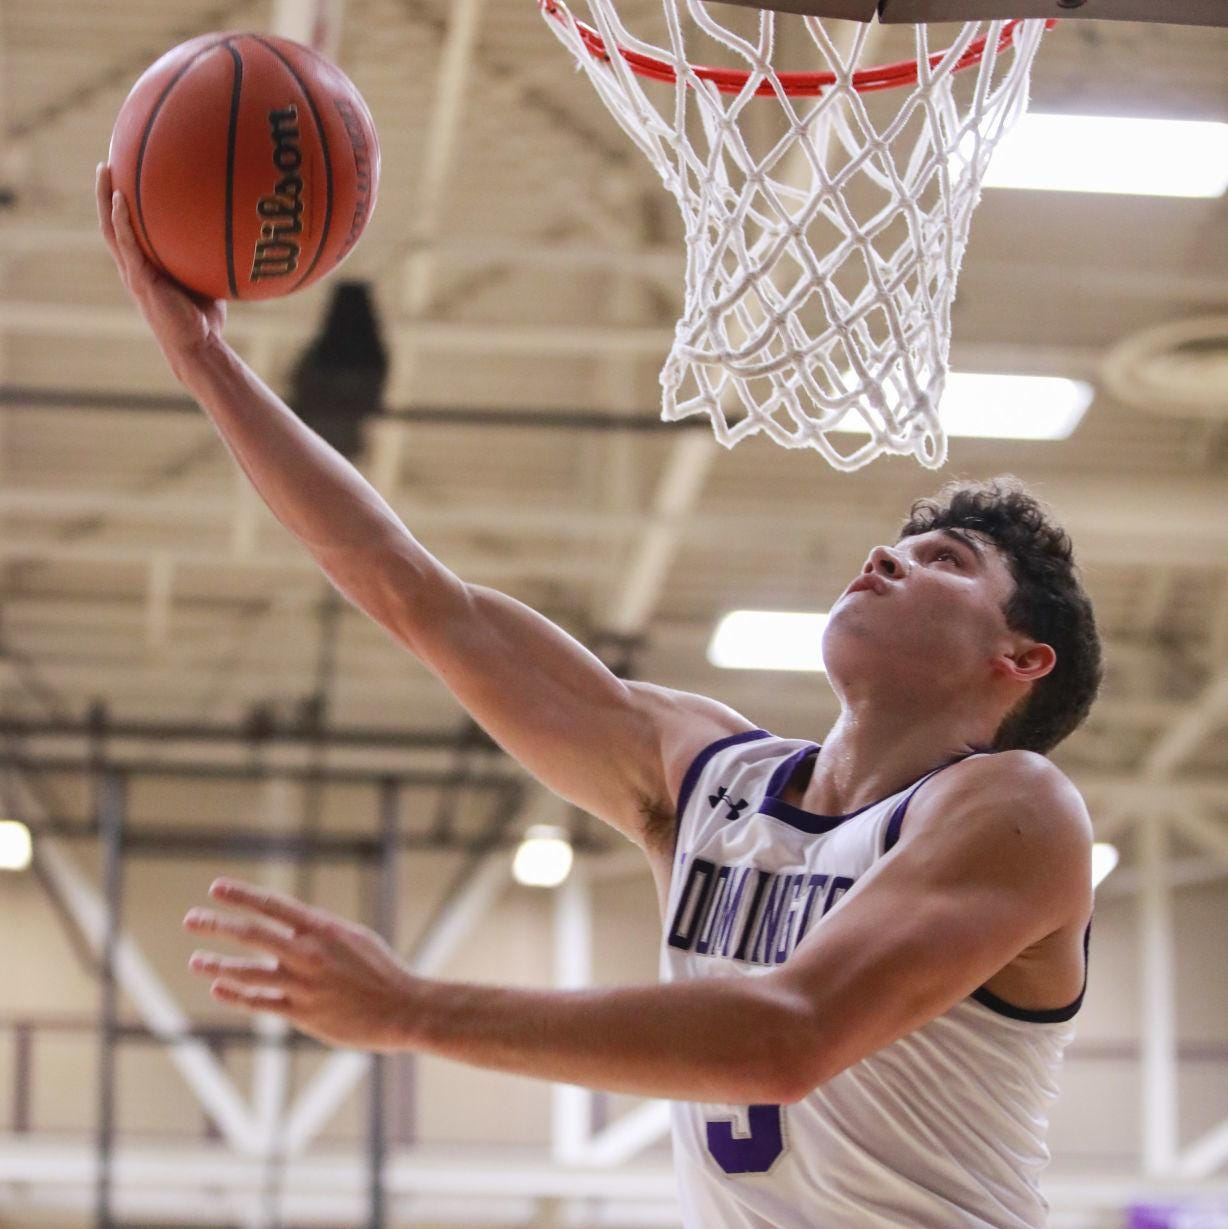 Anthony Leal finally gets IU basketball offer, and may be answer to Hoosiers' shooting woes